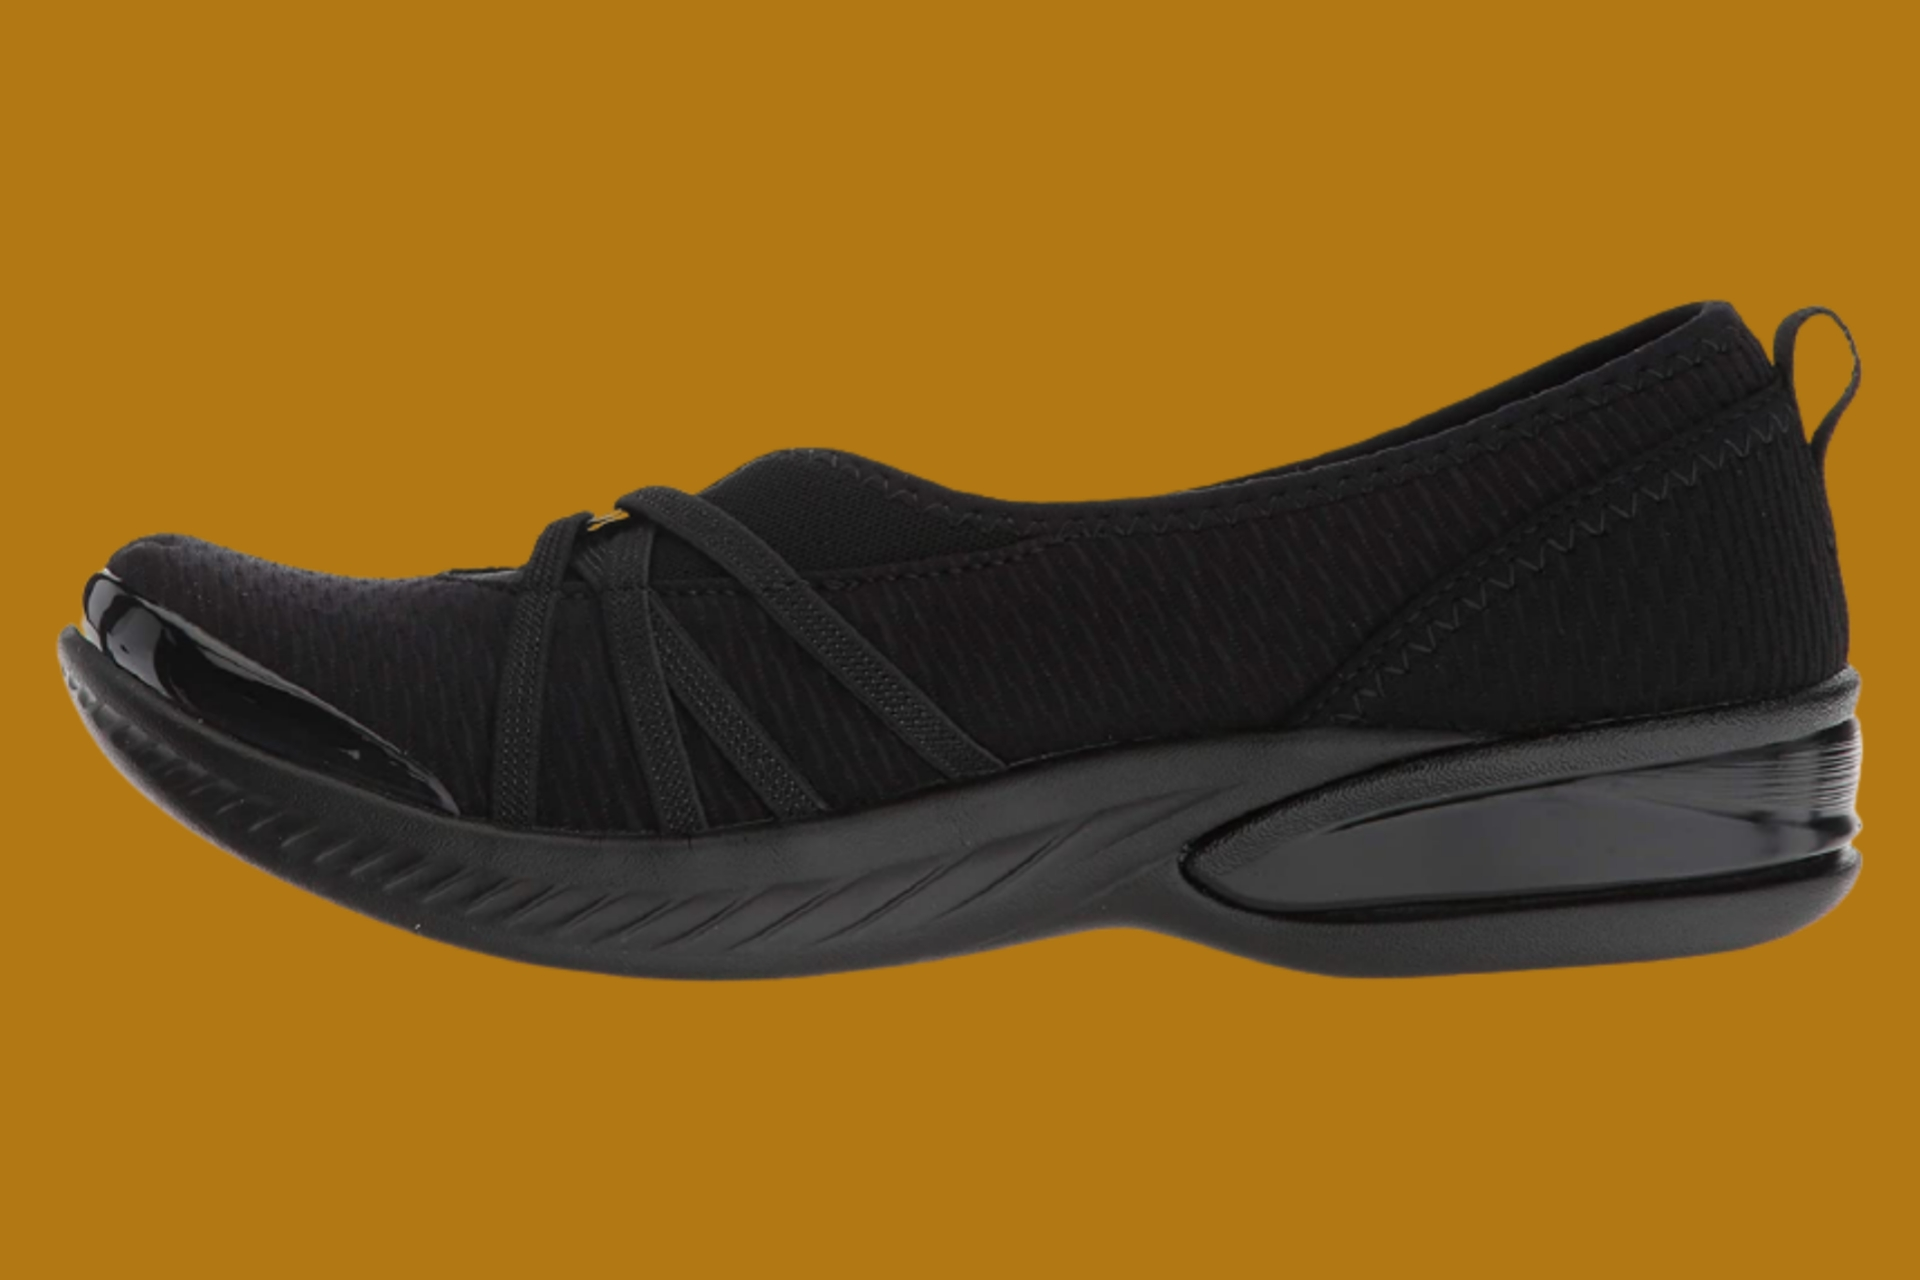 Arch support office shoes for women